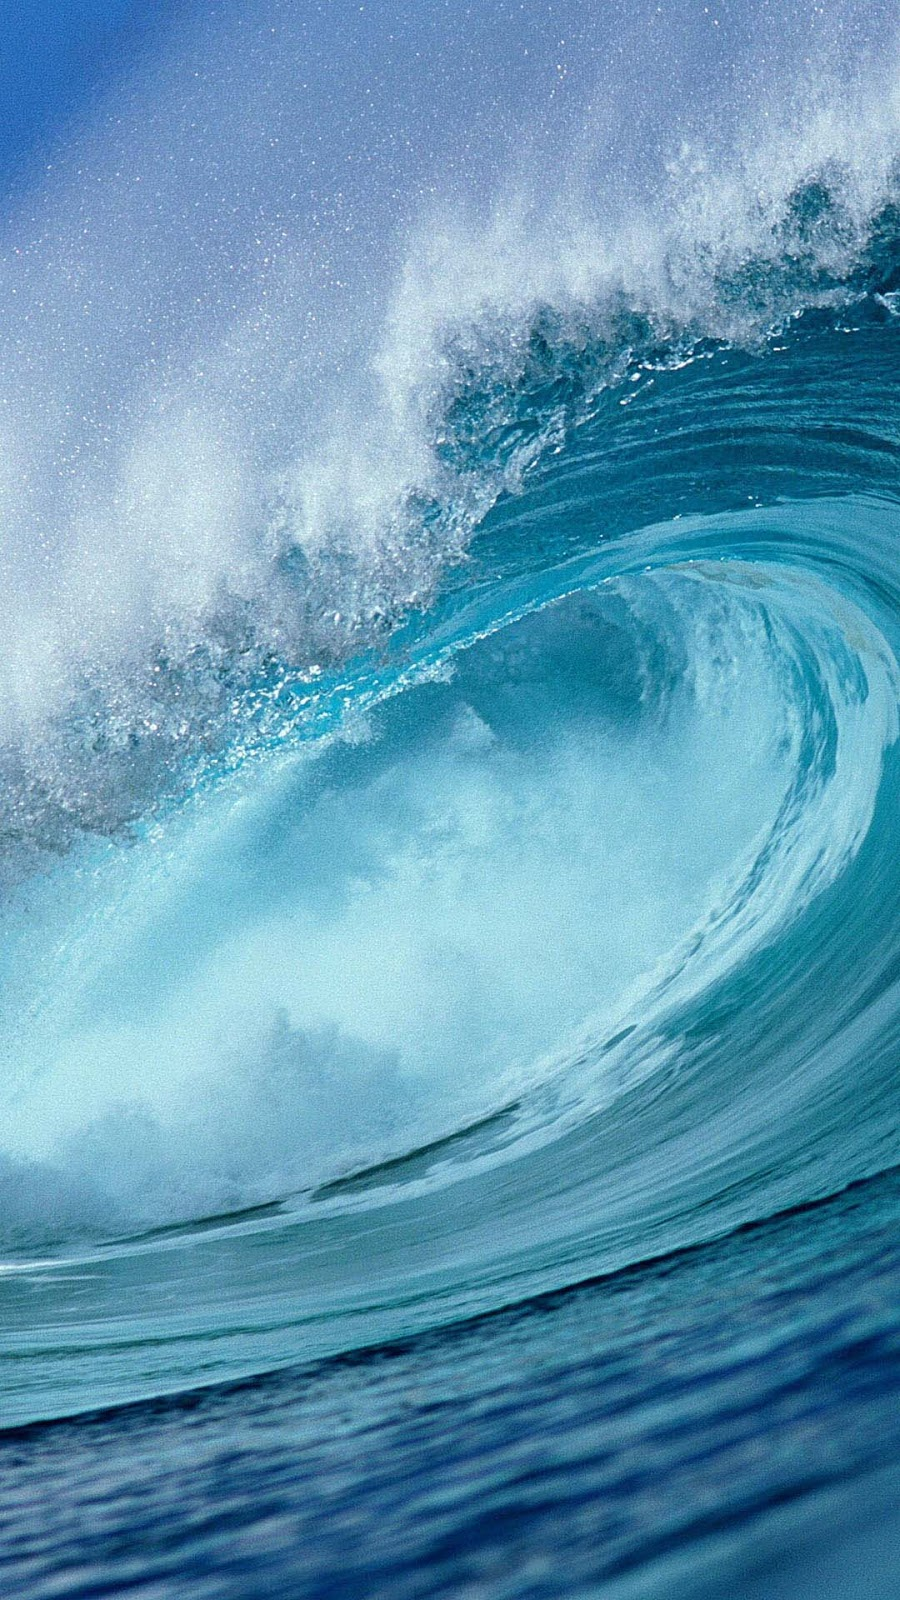 High Quality Mobile Smartphone Wallpapers And Backgrounds Full Hd 1080p In 2020 Ocean Waves Waves Ocean Pictures